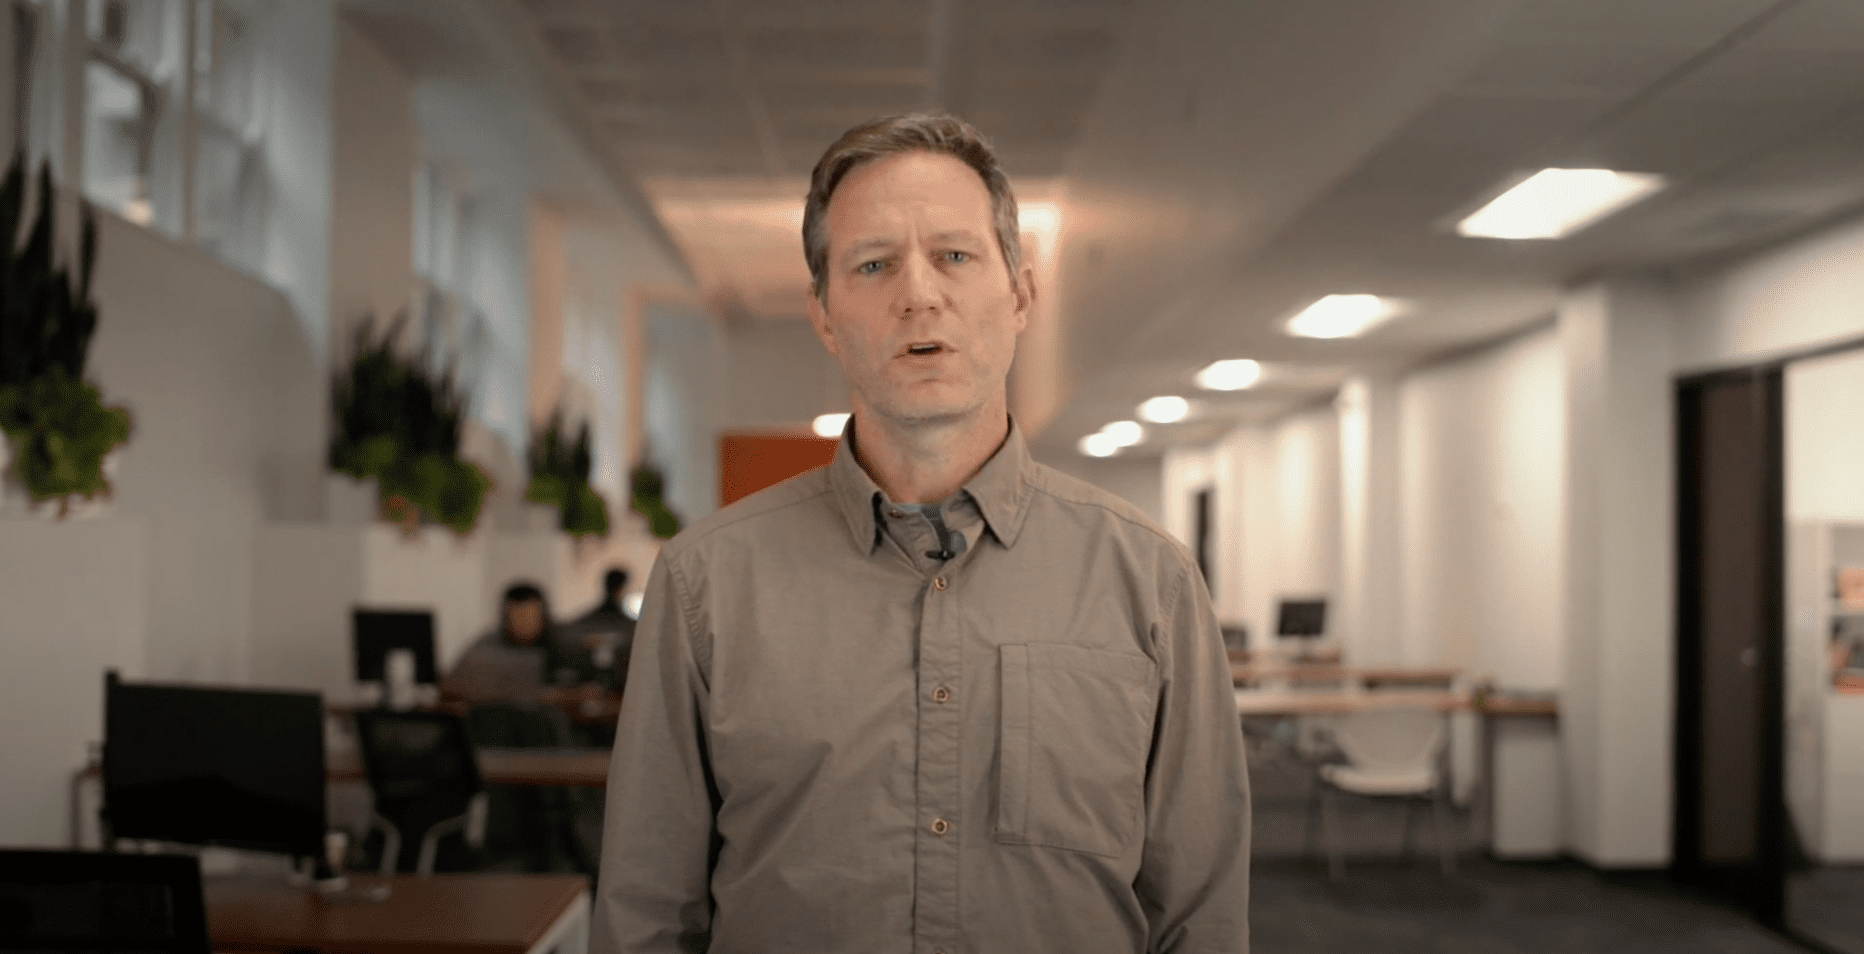 Kevin presenting in a video